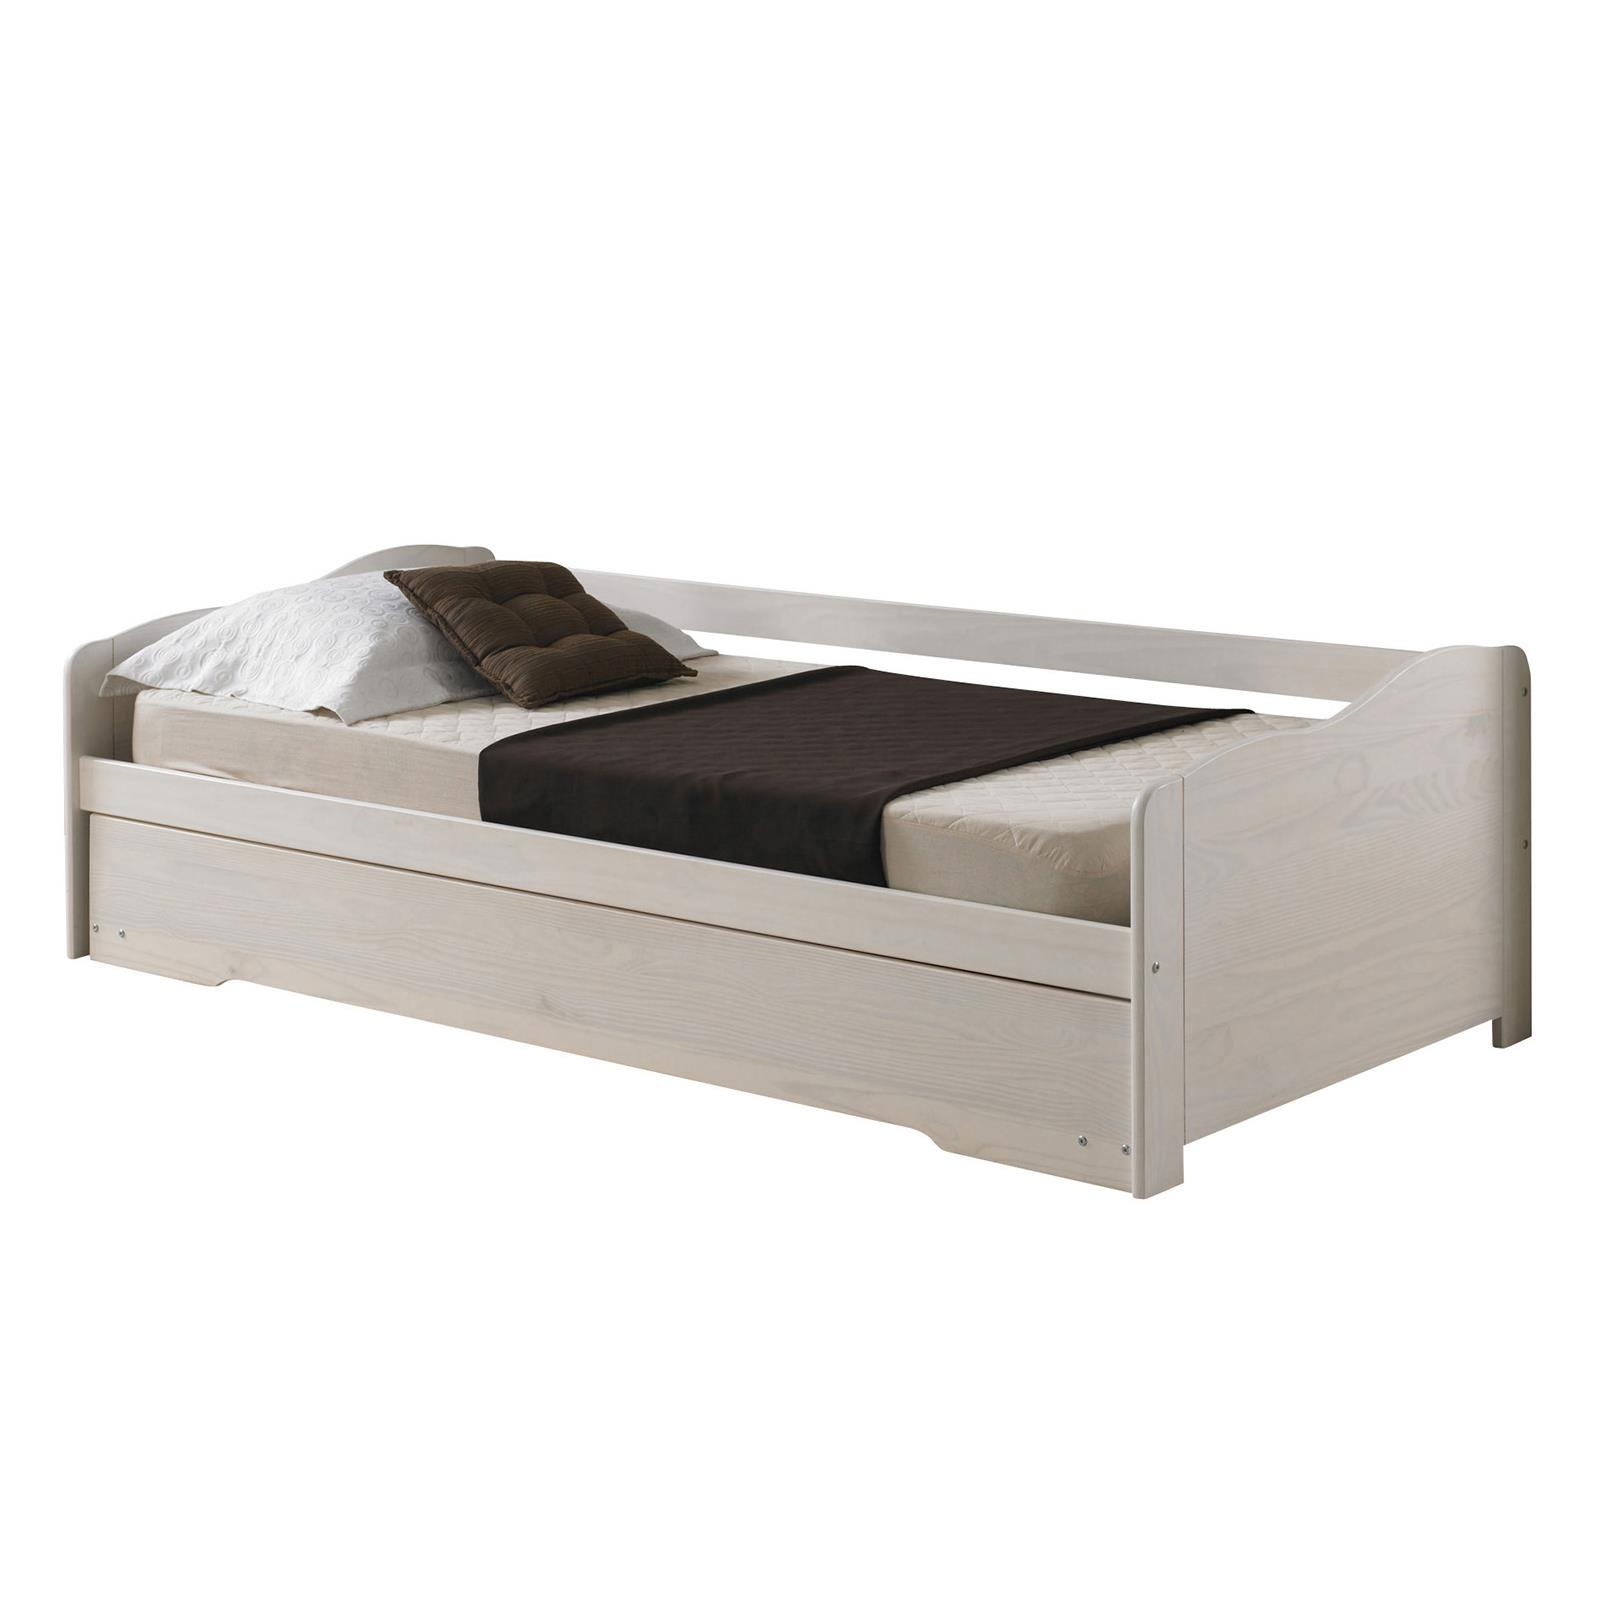 lit gigogne lit fonctionnel tiroir lit 90 x 200 cm pin massif lasur blanc eur 167 95. Black Bedroom Furniture Sets. Home Design Ideas